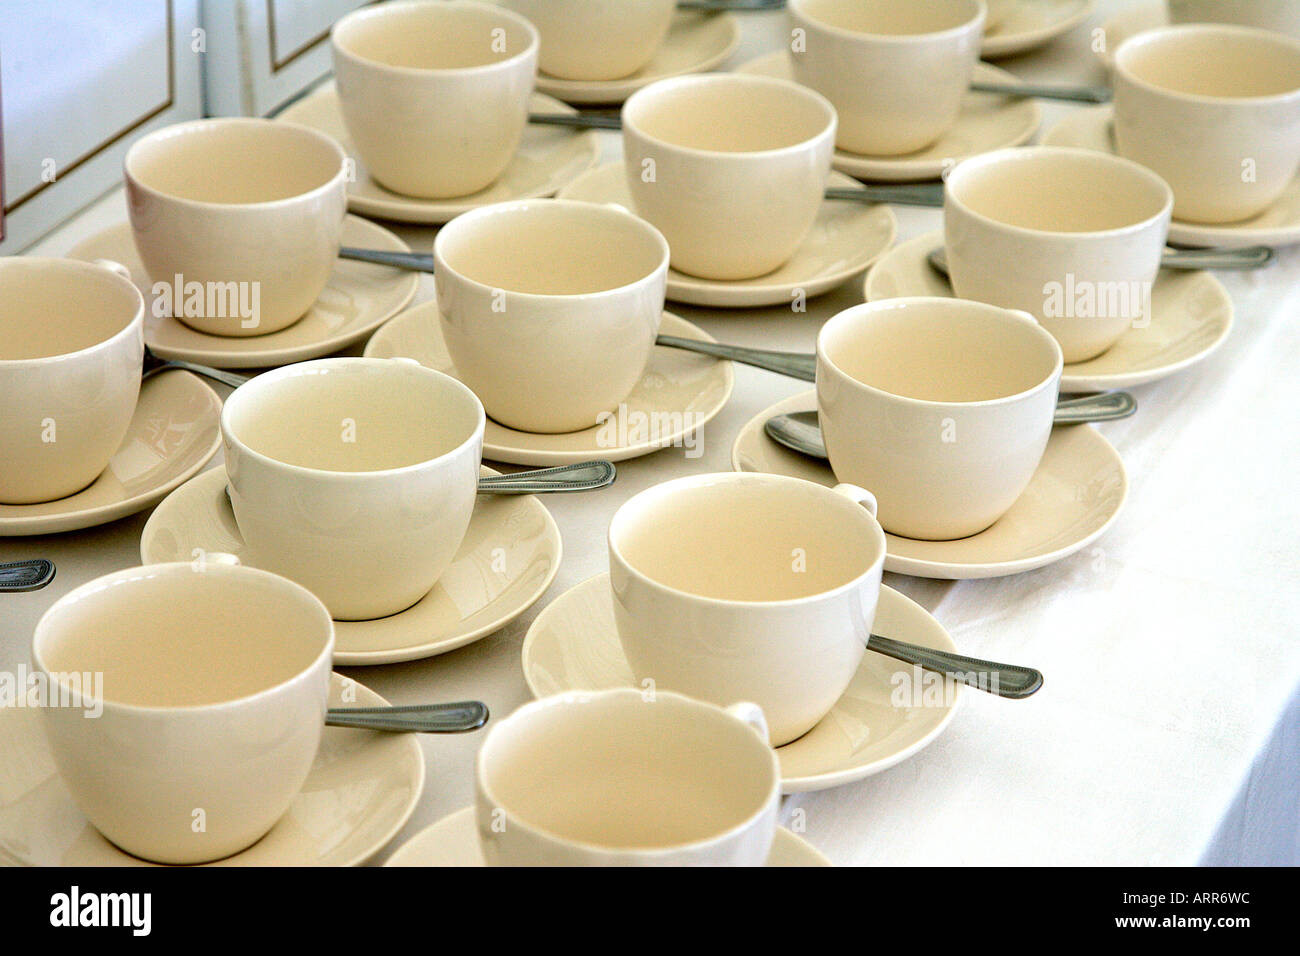 Crockery Traditional Design Tea Time Catering Porcelain China Ceramic Stock Photo Alamy